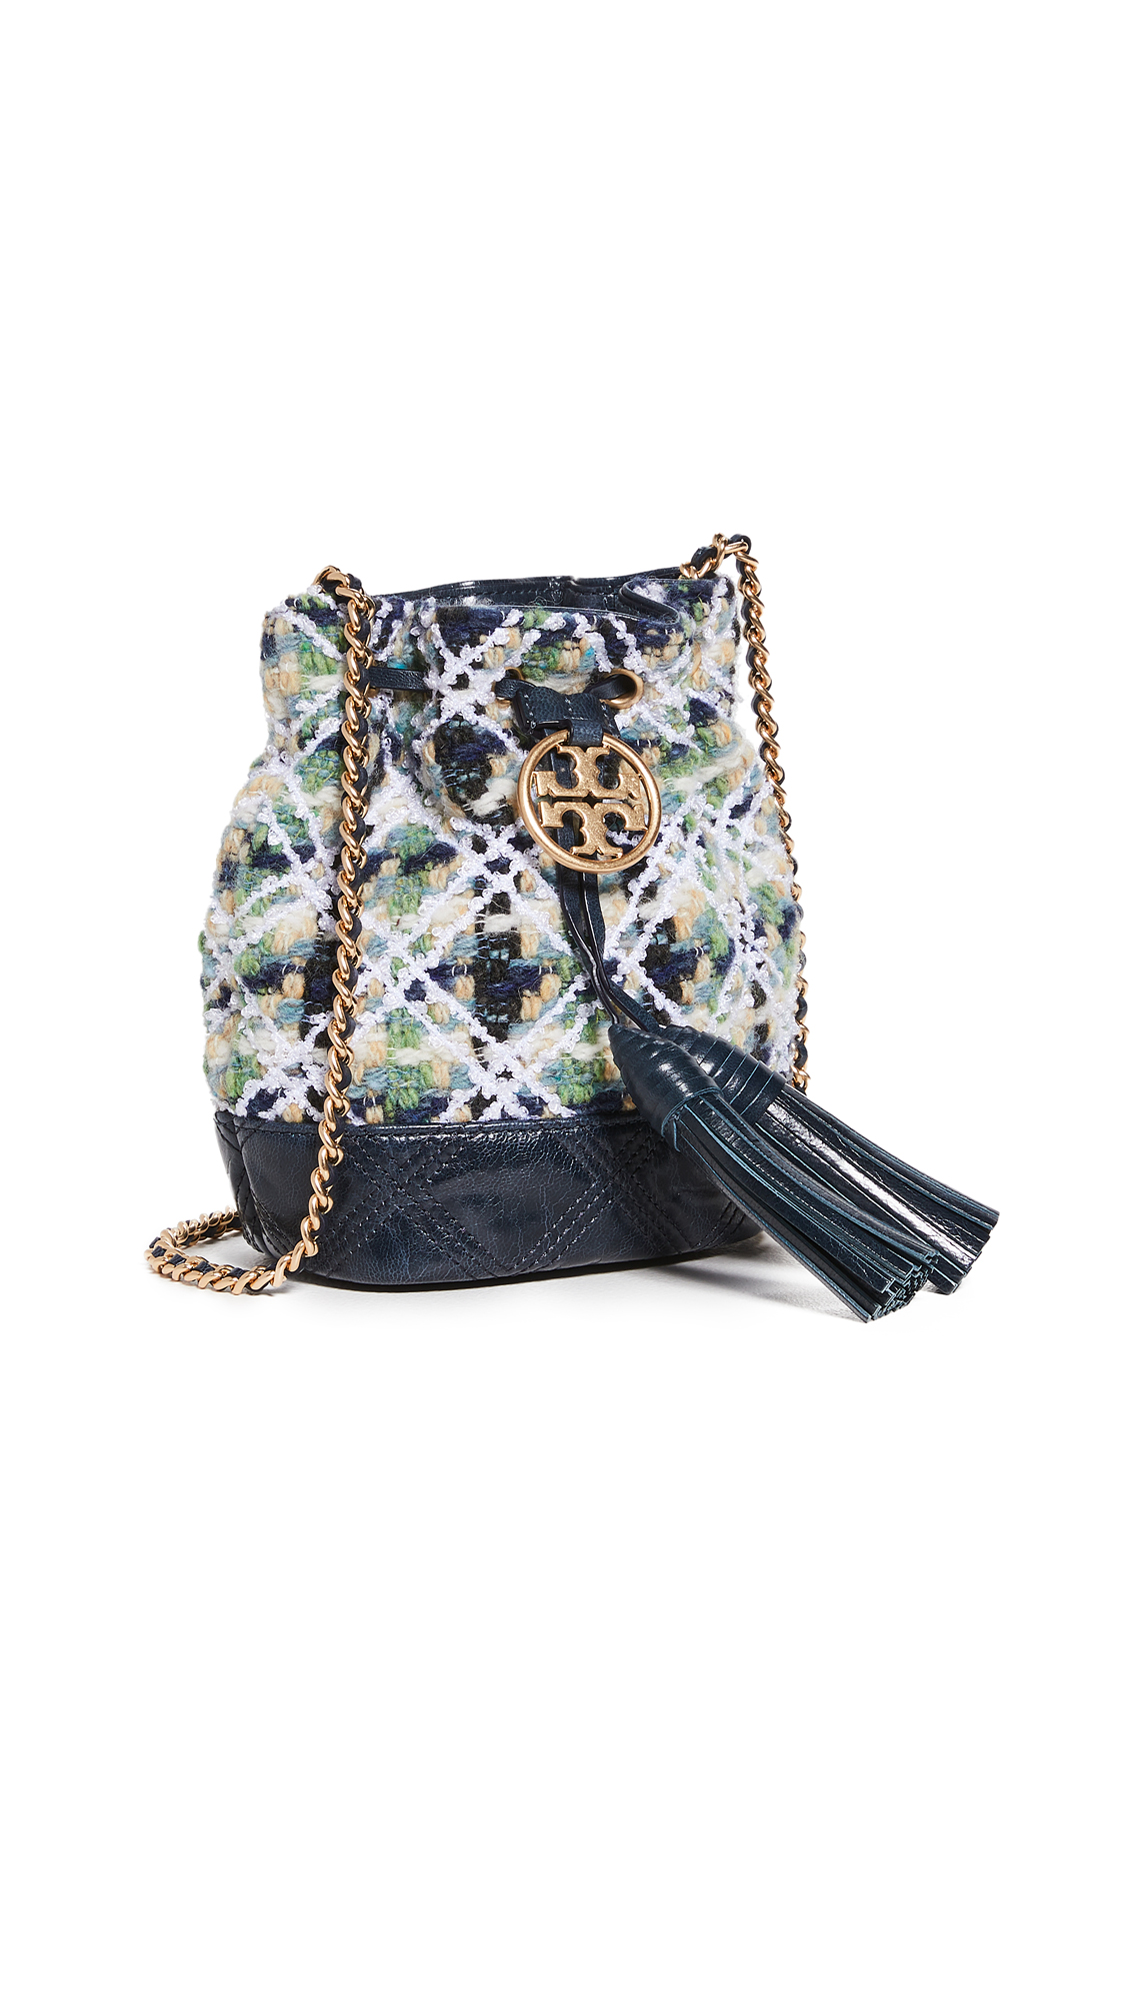 Tory Burch Fleming Soft Tweed Mini Bucket Bag